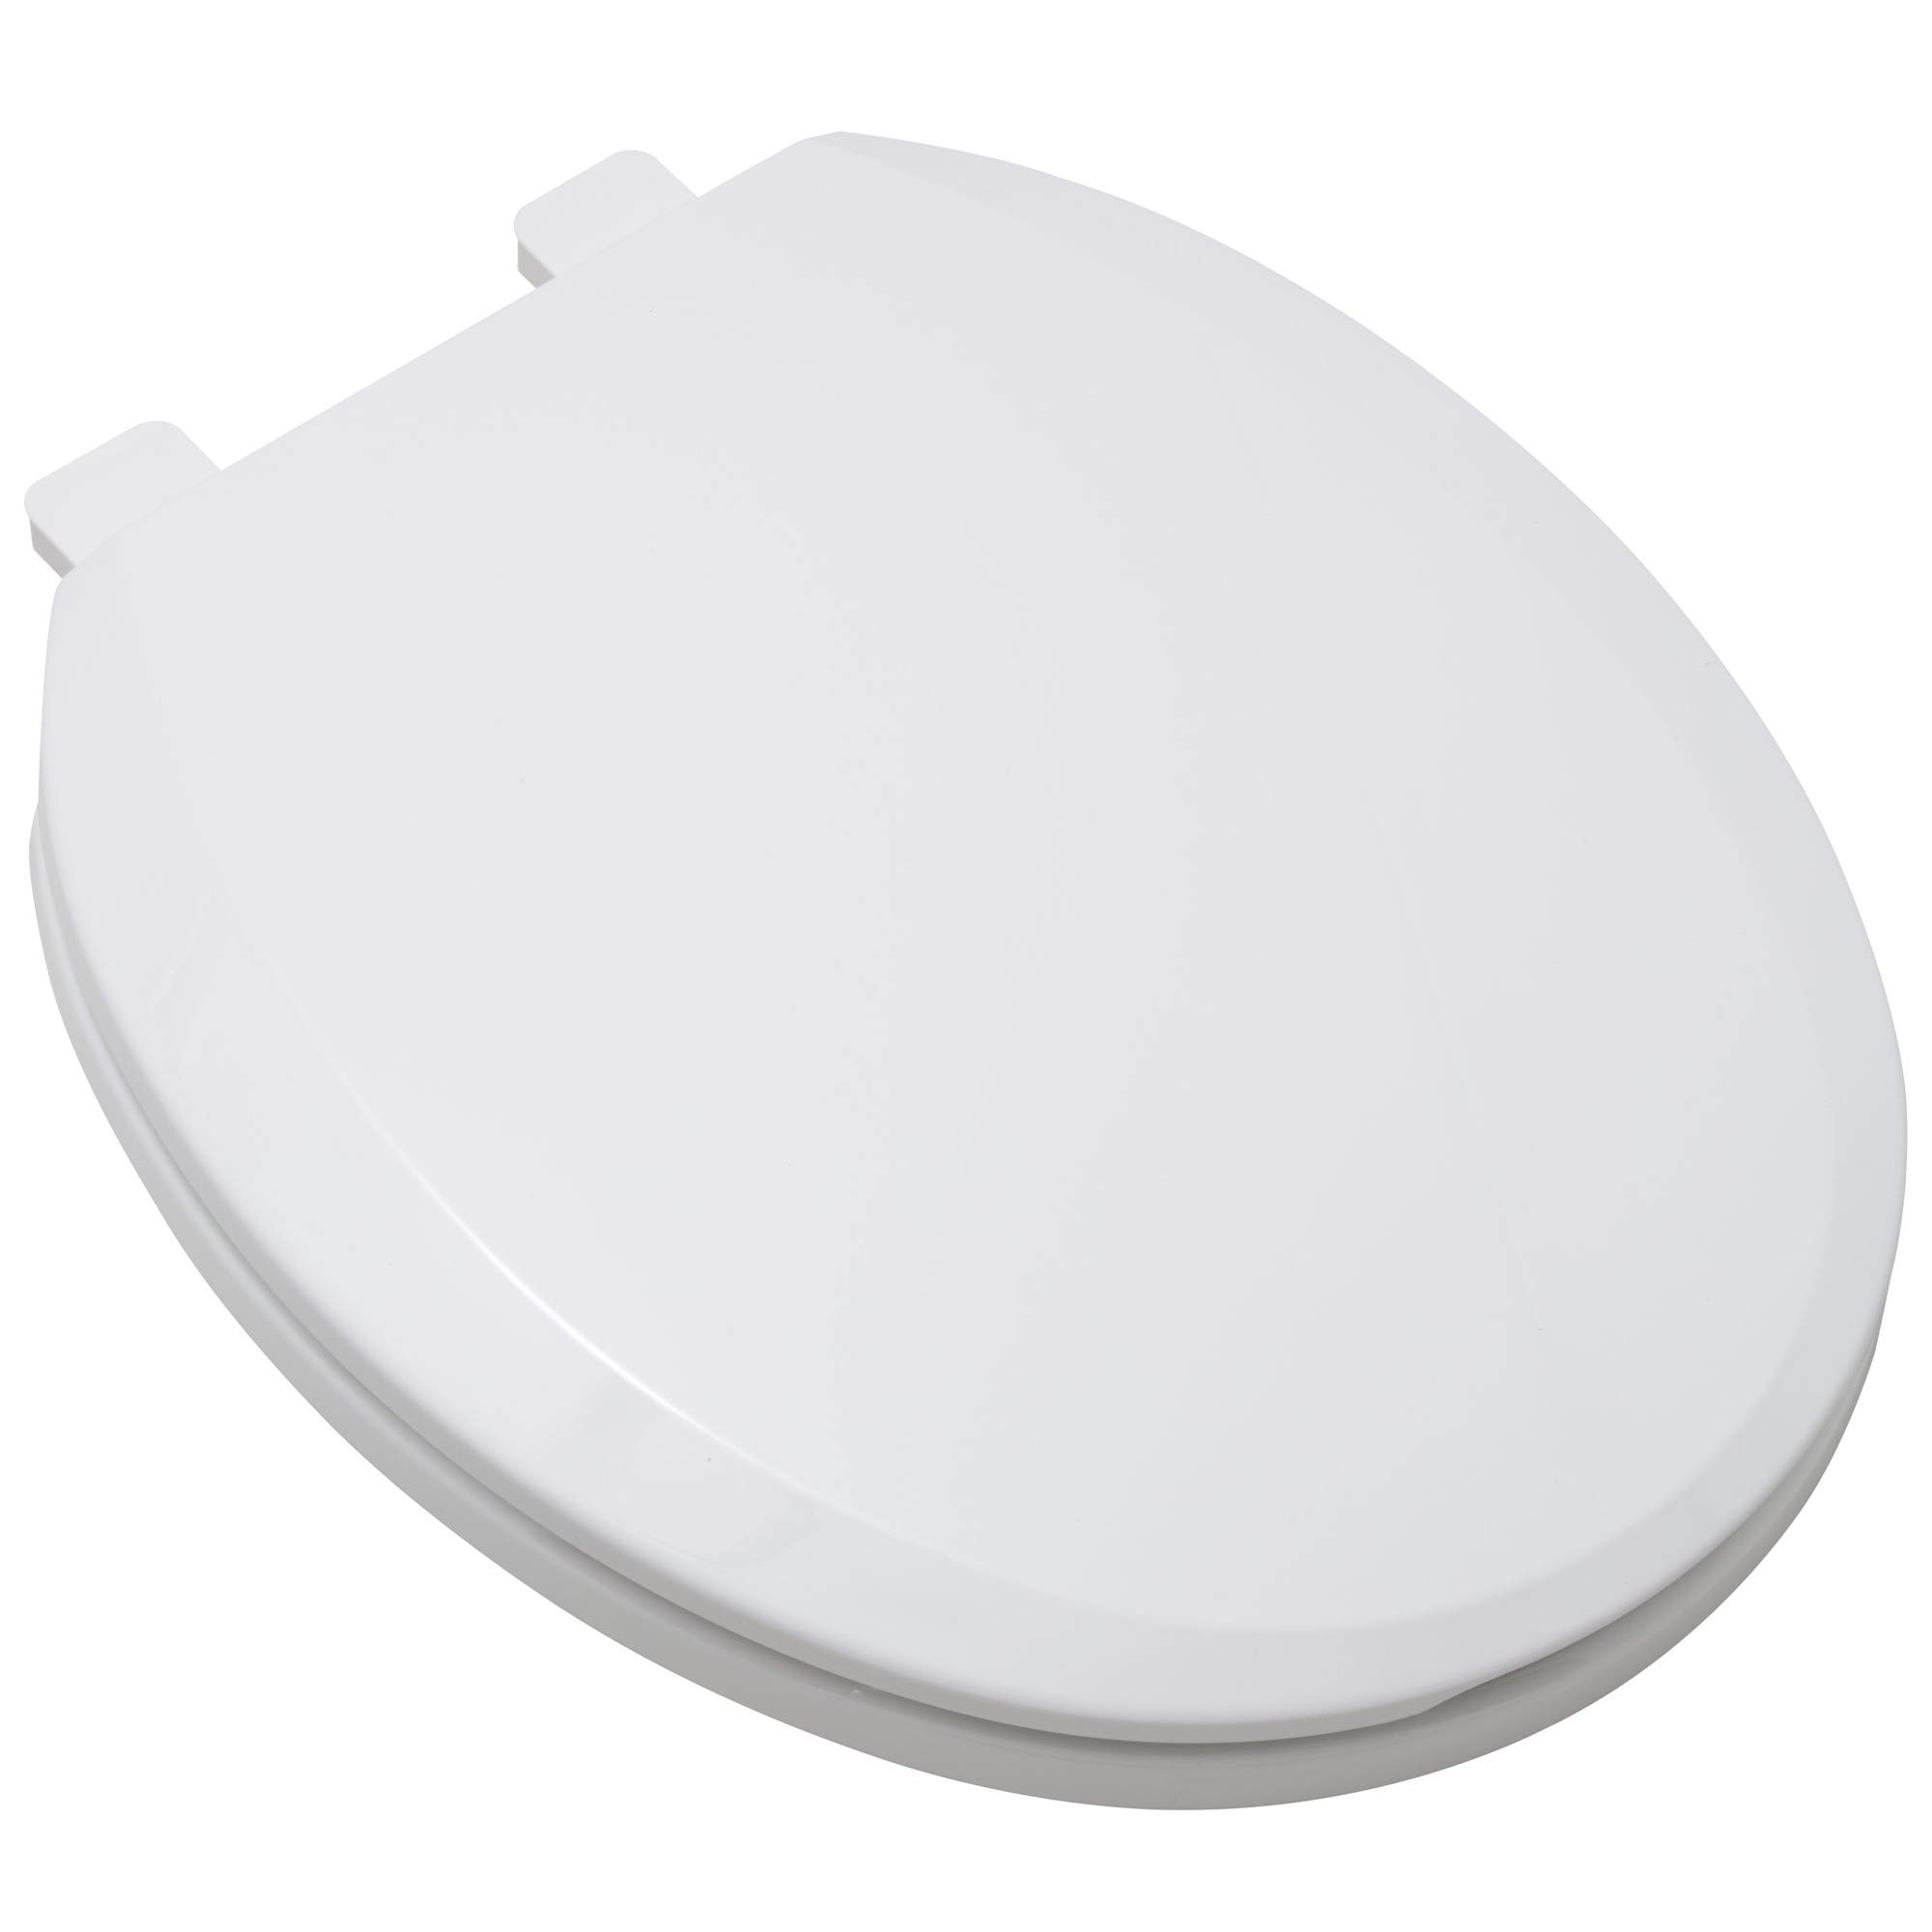 ProFlo PFTSEC1000WH Round Closed Front Toilet Seat with Slow Close Lid and Easy Clean by ProFlo